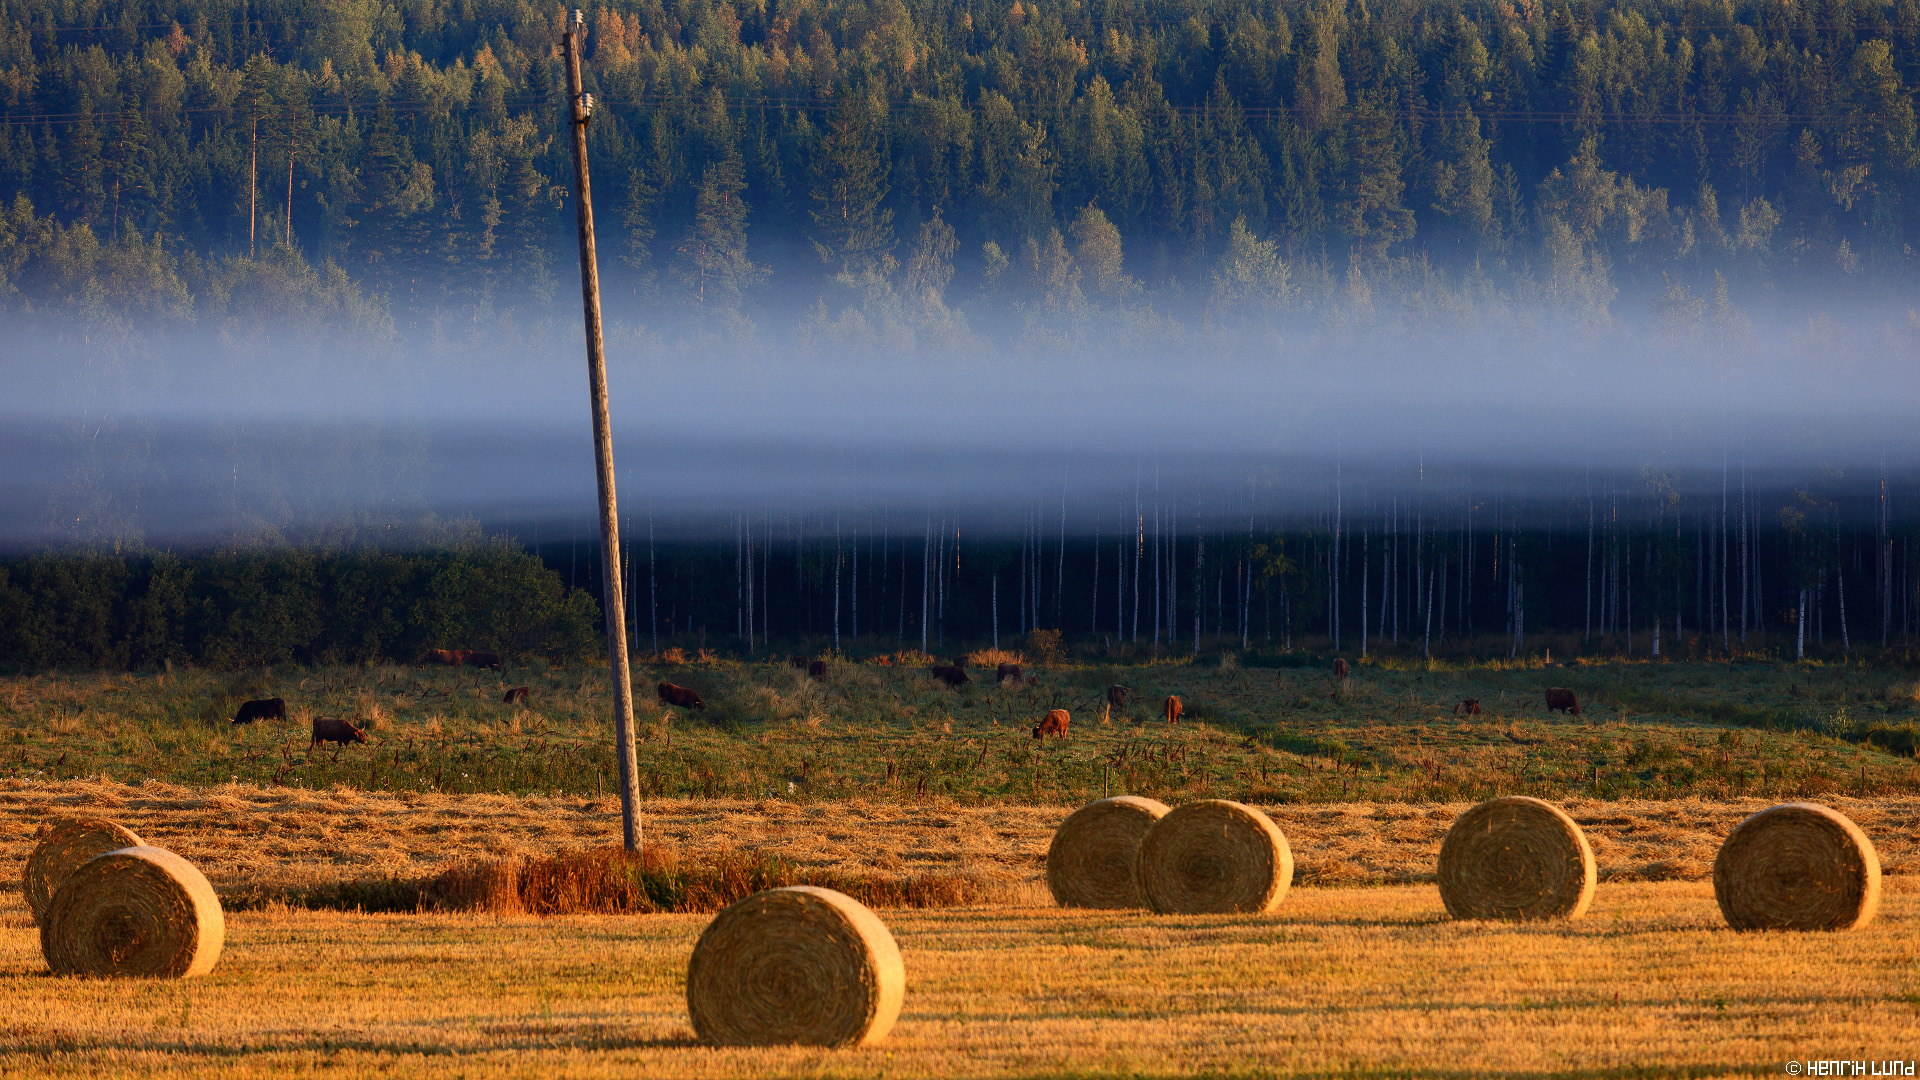 Autumn morning with the cattle in Porlammi, Lapinjärvi, Finland. September 2015.